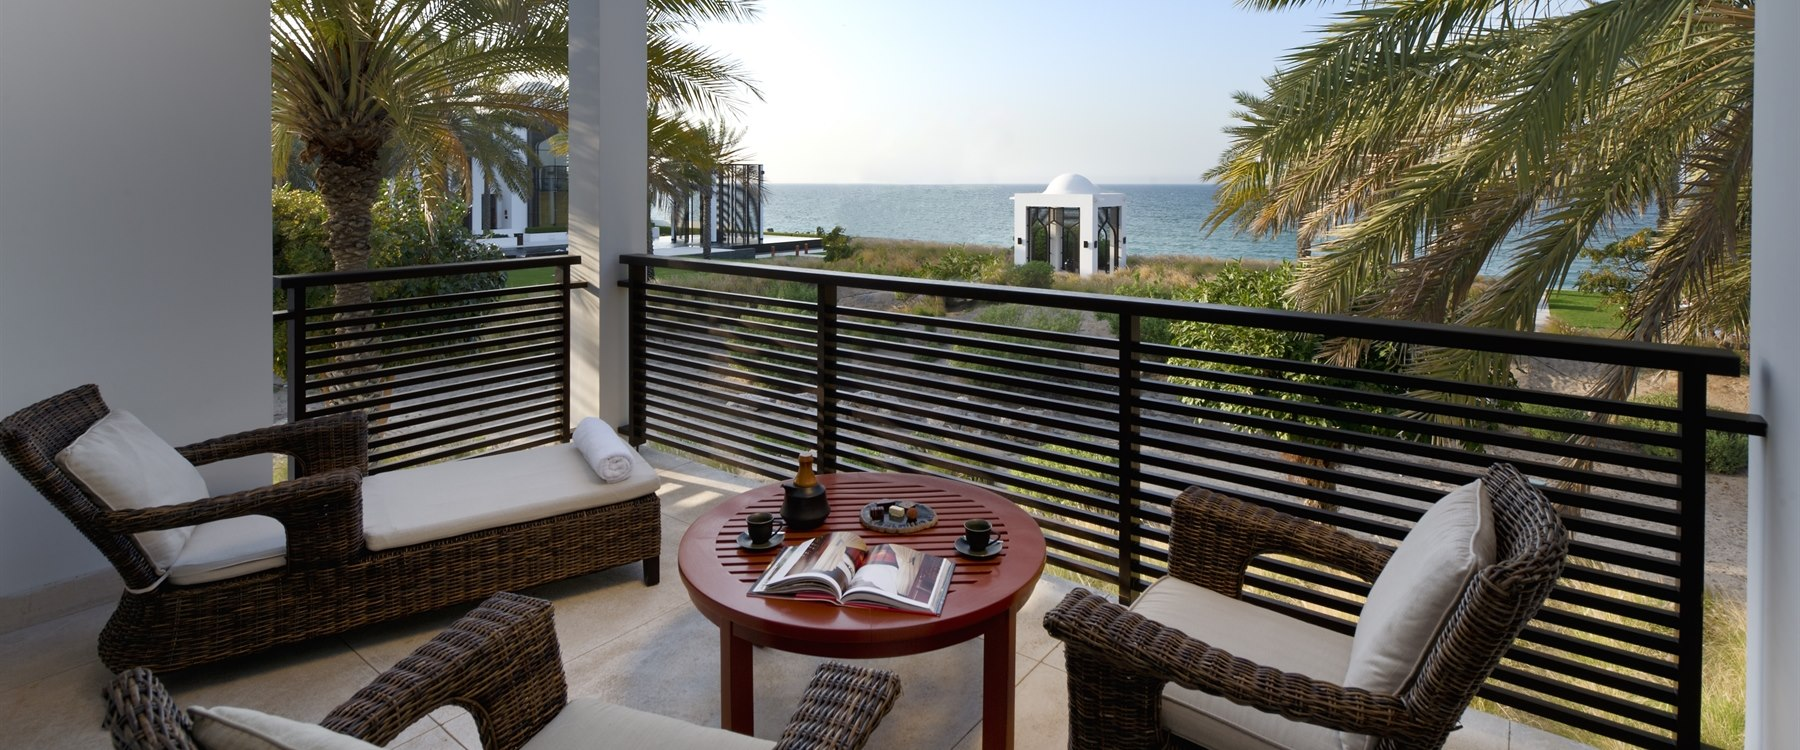 Chedi club suite terrace with ocean view at The Chedi Muscat, Oman